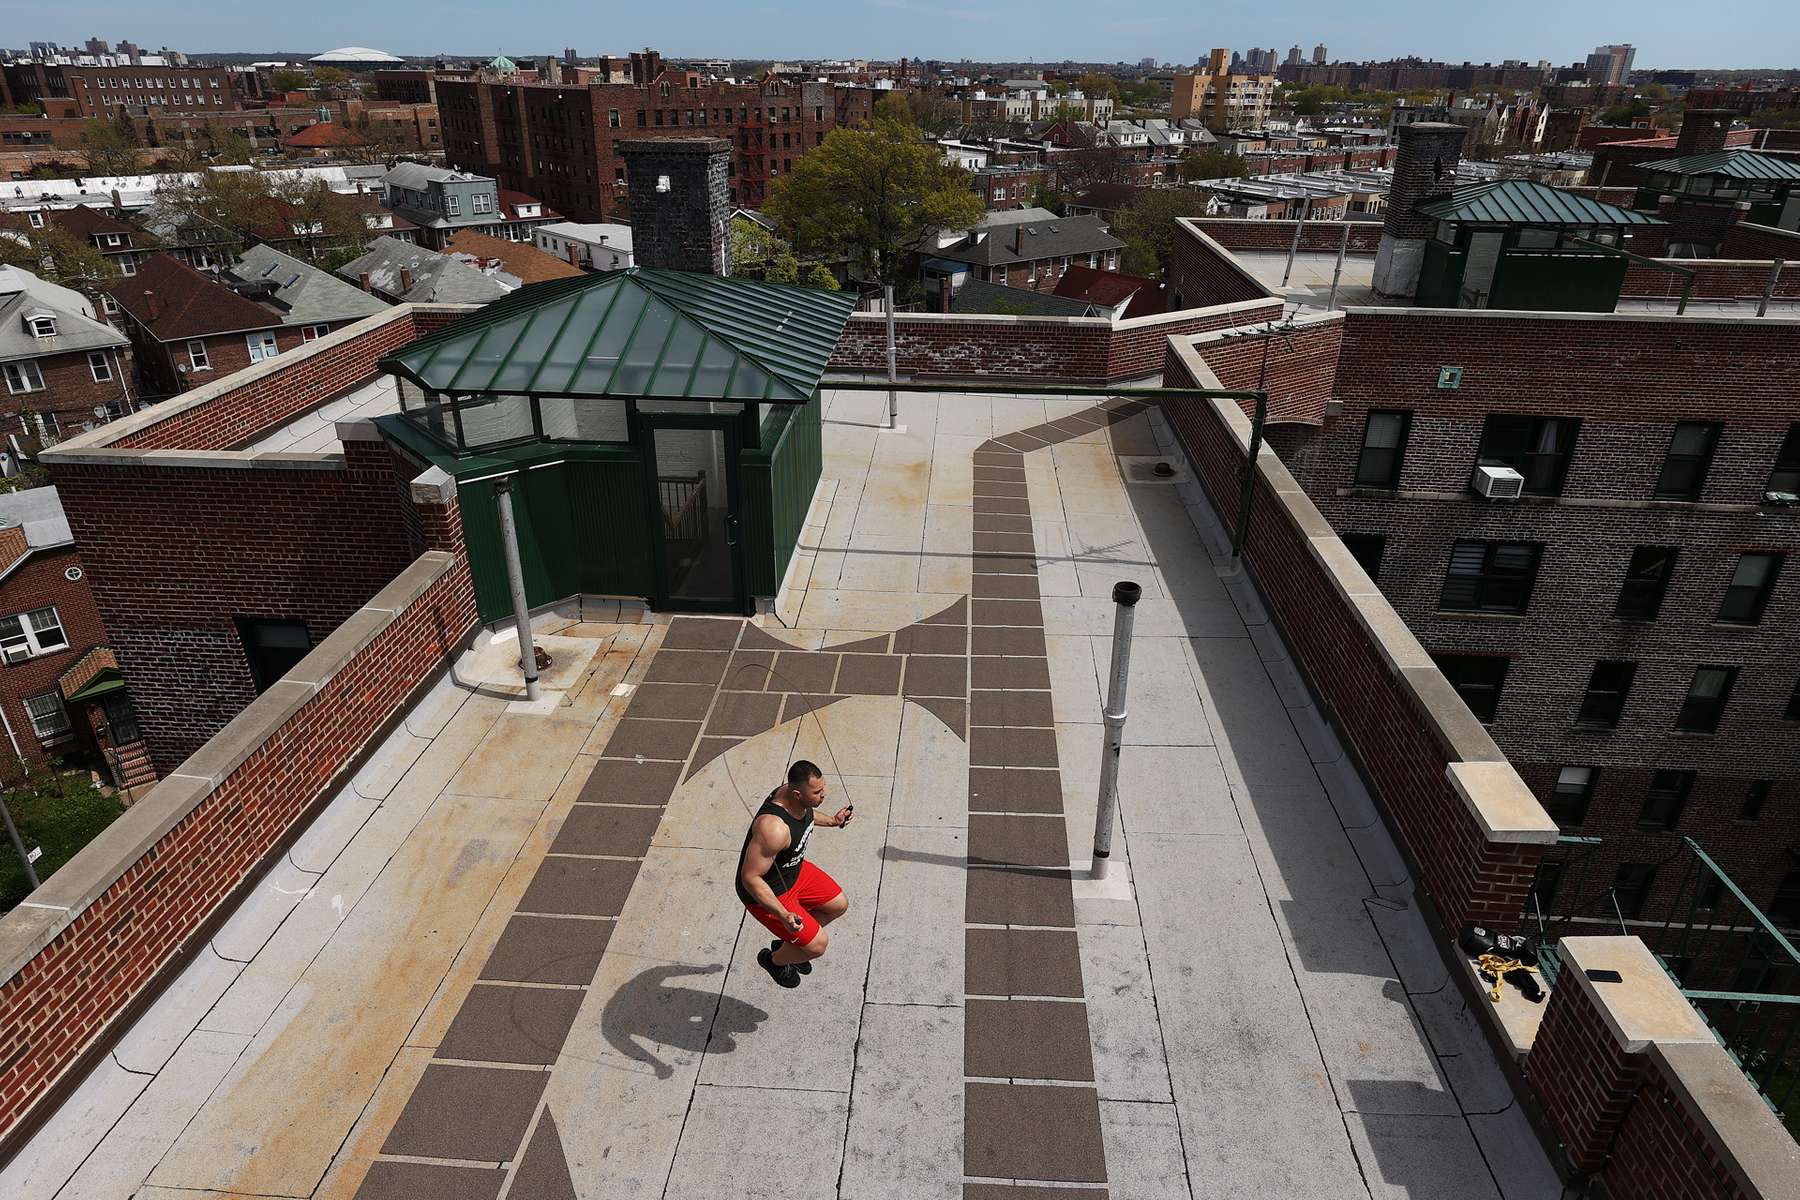 Amateur Boxer and New York City Firefighter Jonathan Velasquez trains on the rooftop of his building on May 02, 2020 in the neighborhood of Jackson Heights in the Borough of Queens, New York.  Local Amateur Boxers have continued To train as best they can during coronavirus COVID-19 Pandemic.  The World Health Organization declared coronavirus (COVID-19) a global pandemic on March 11th.